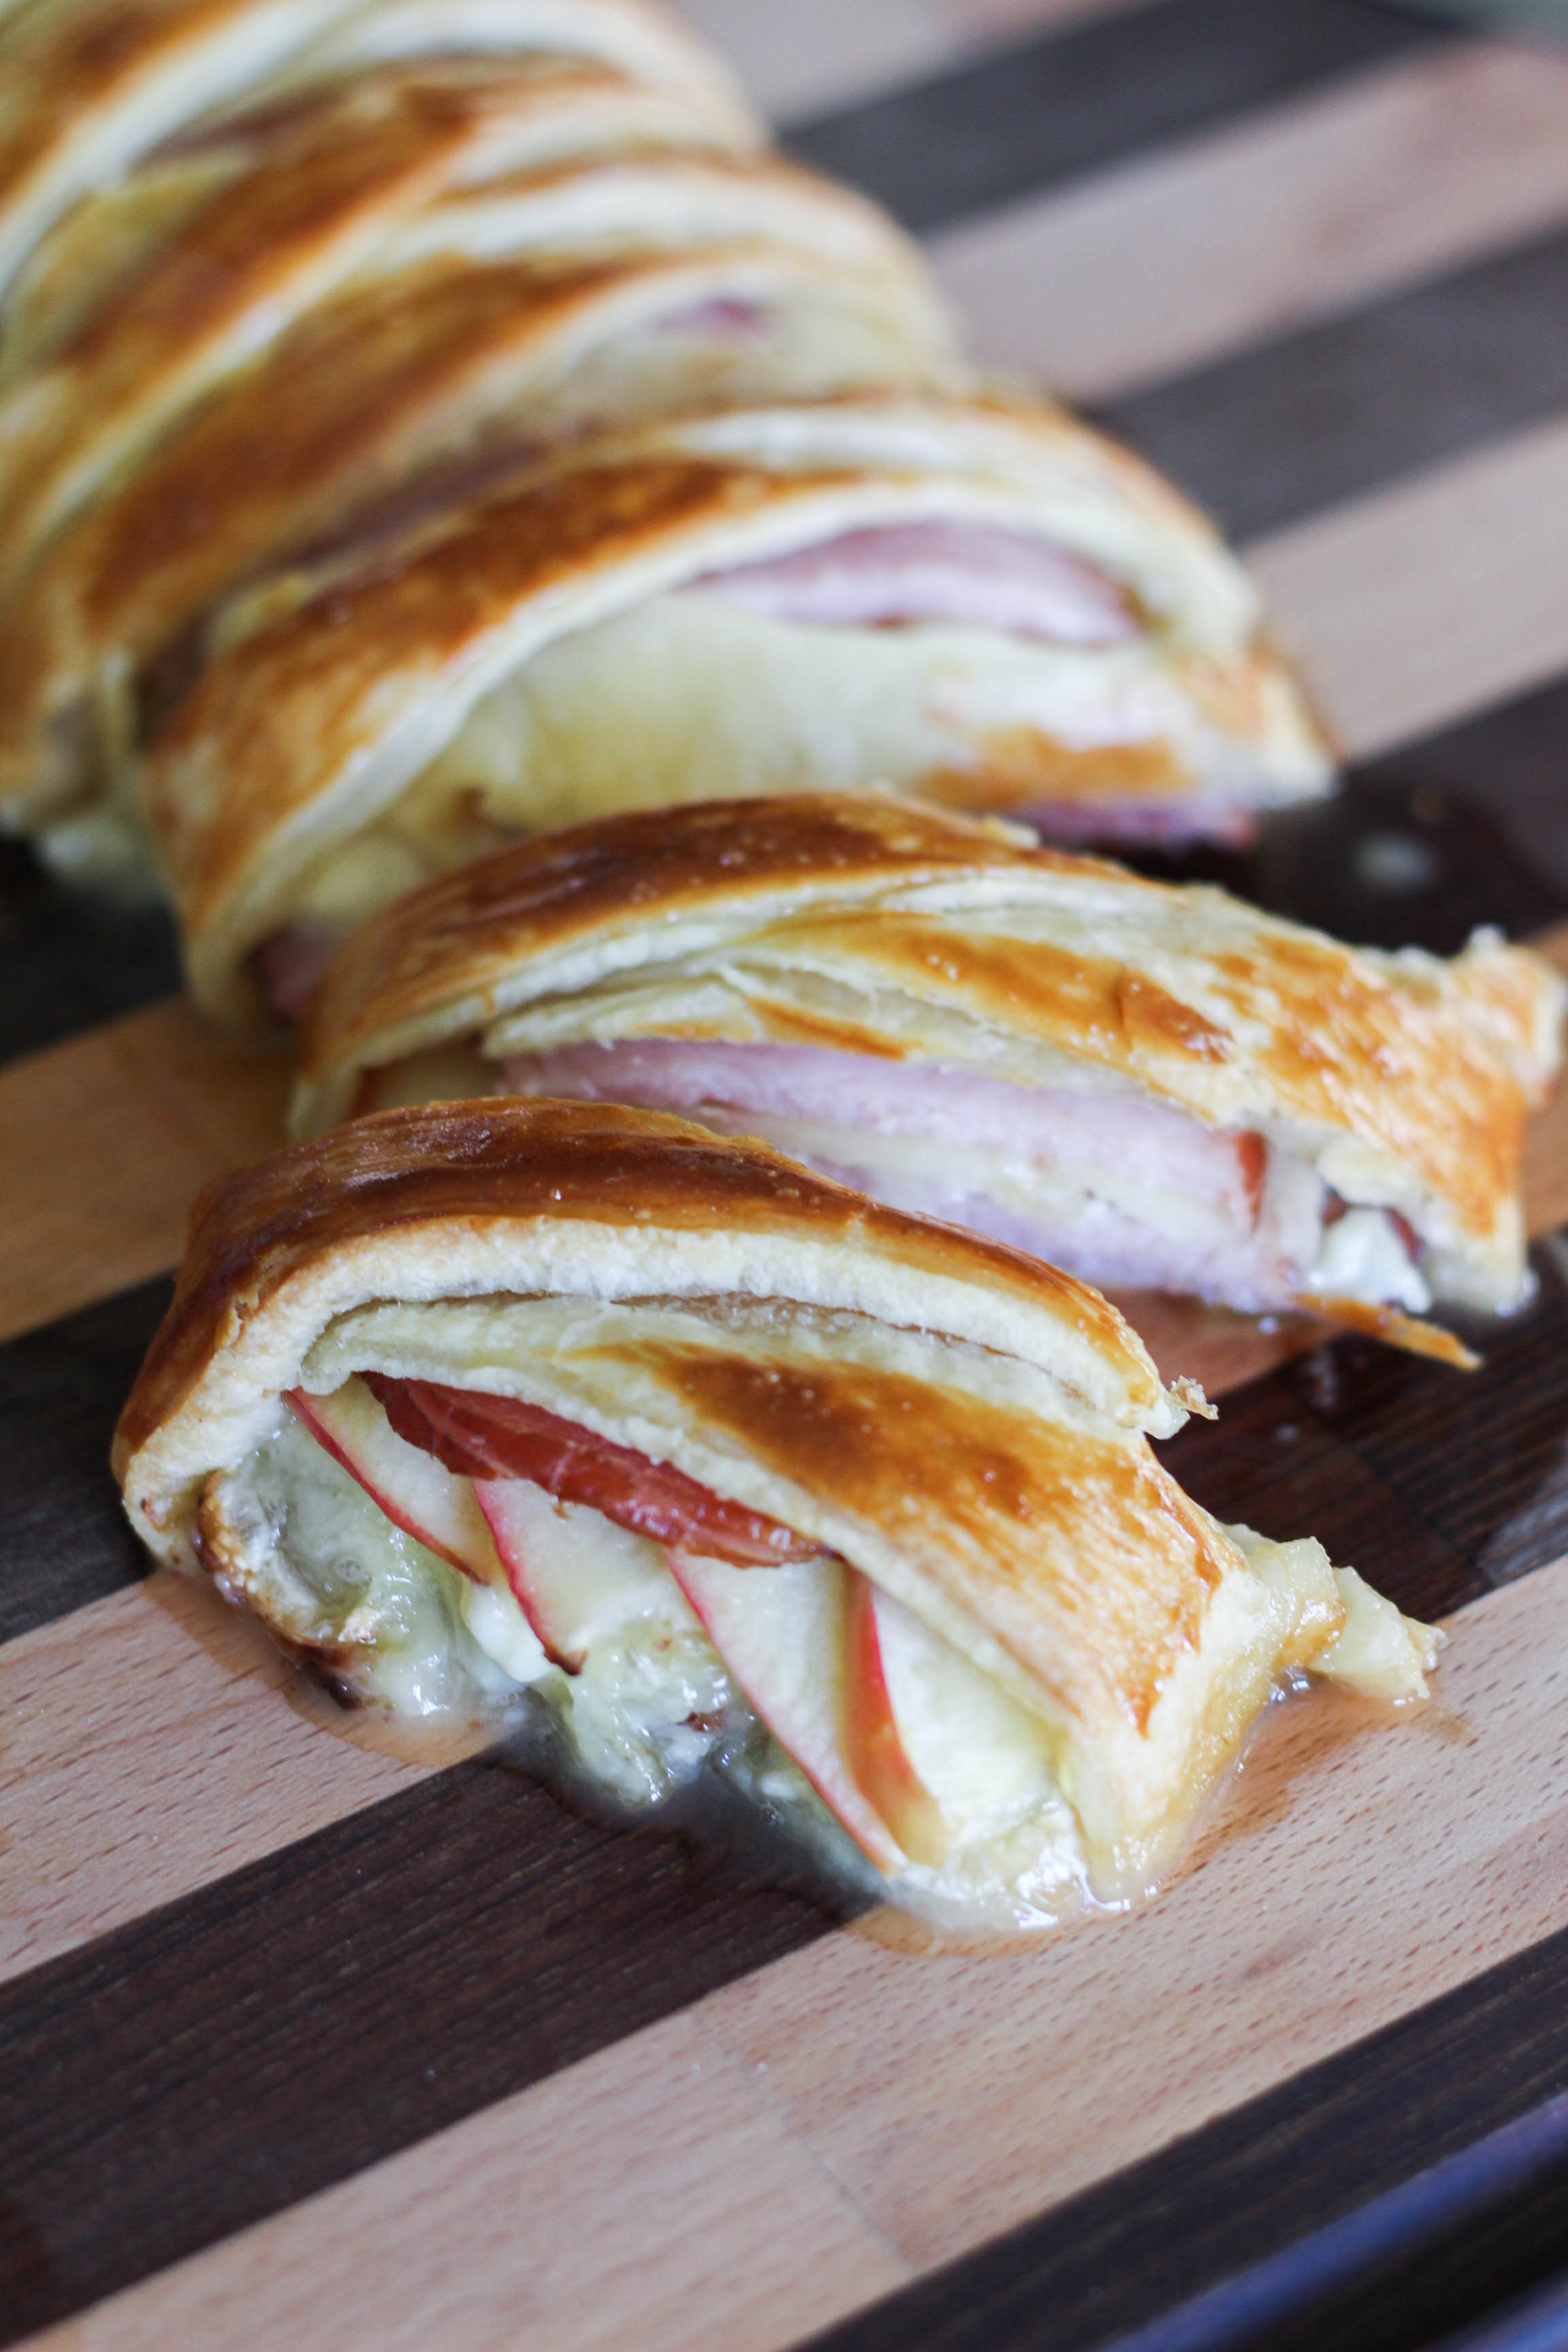 Braided Ham & Brie Stuffed Pastry